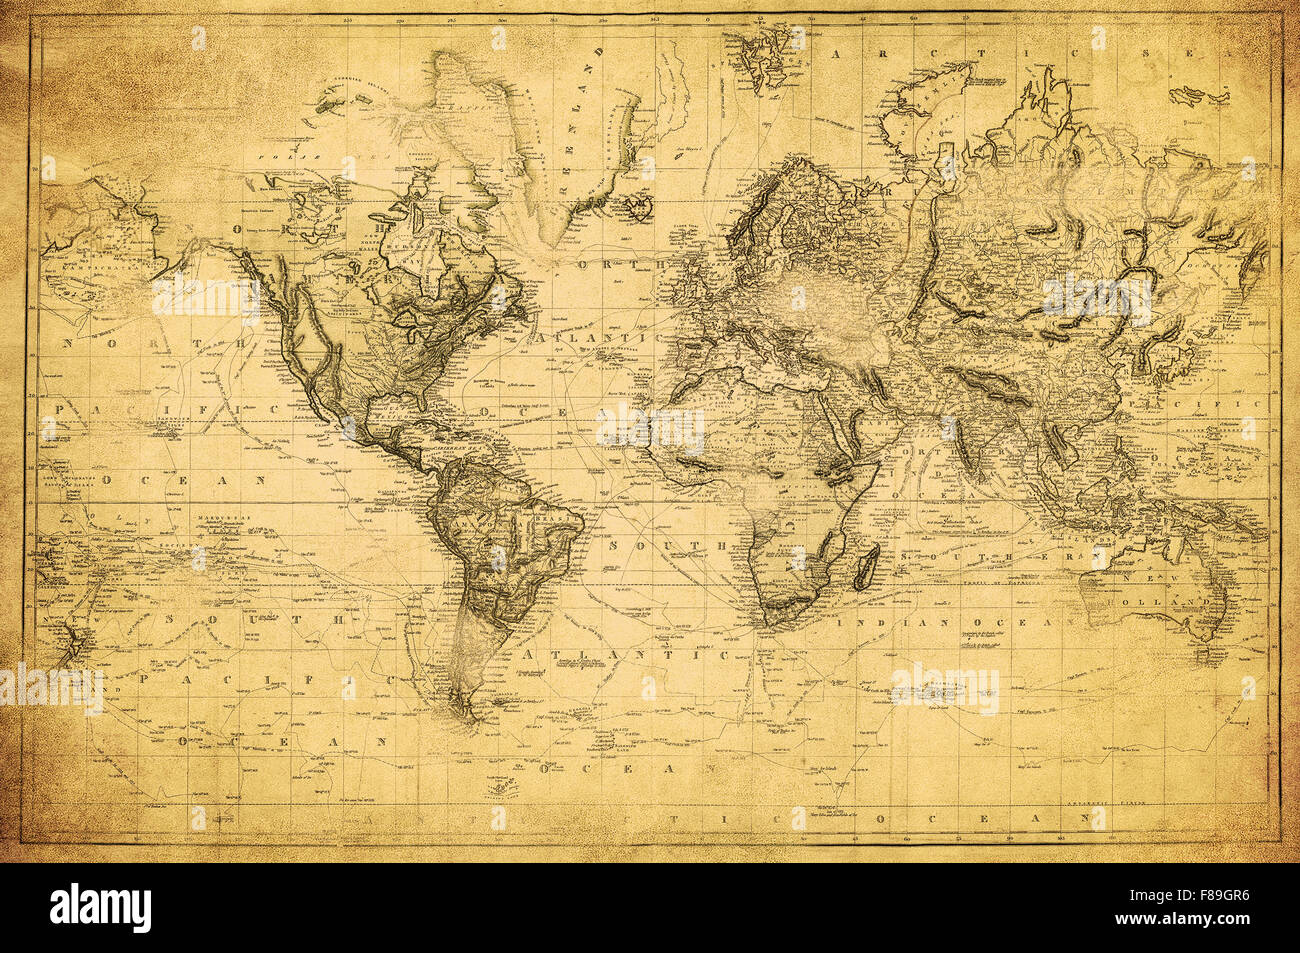 vintage map of the world 1831 - Stock Image